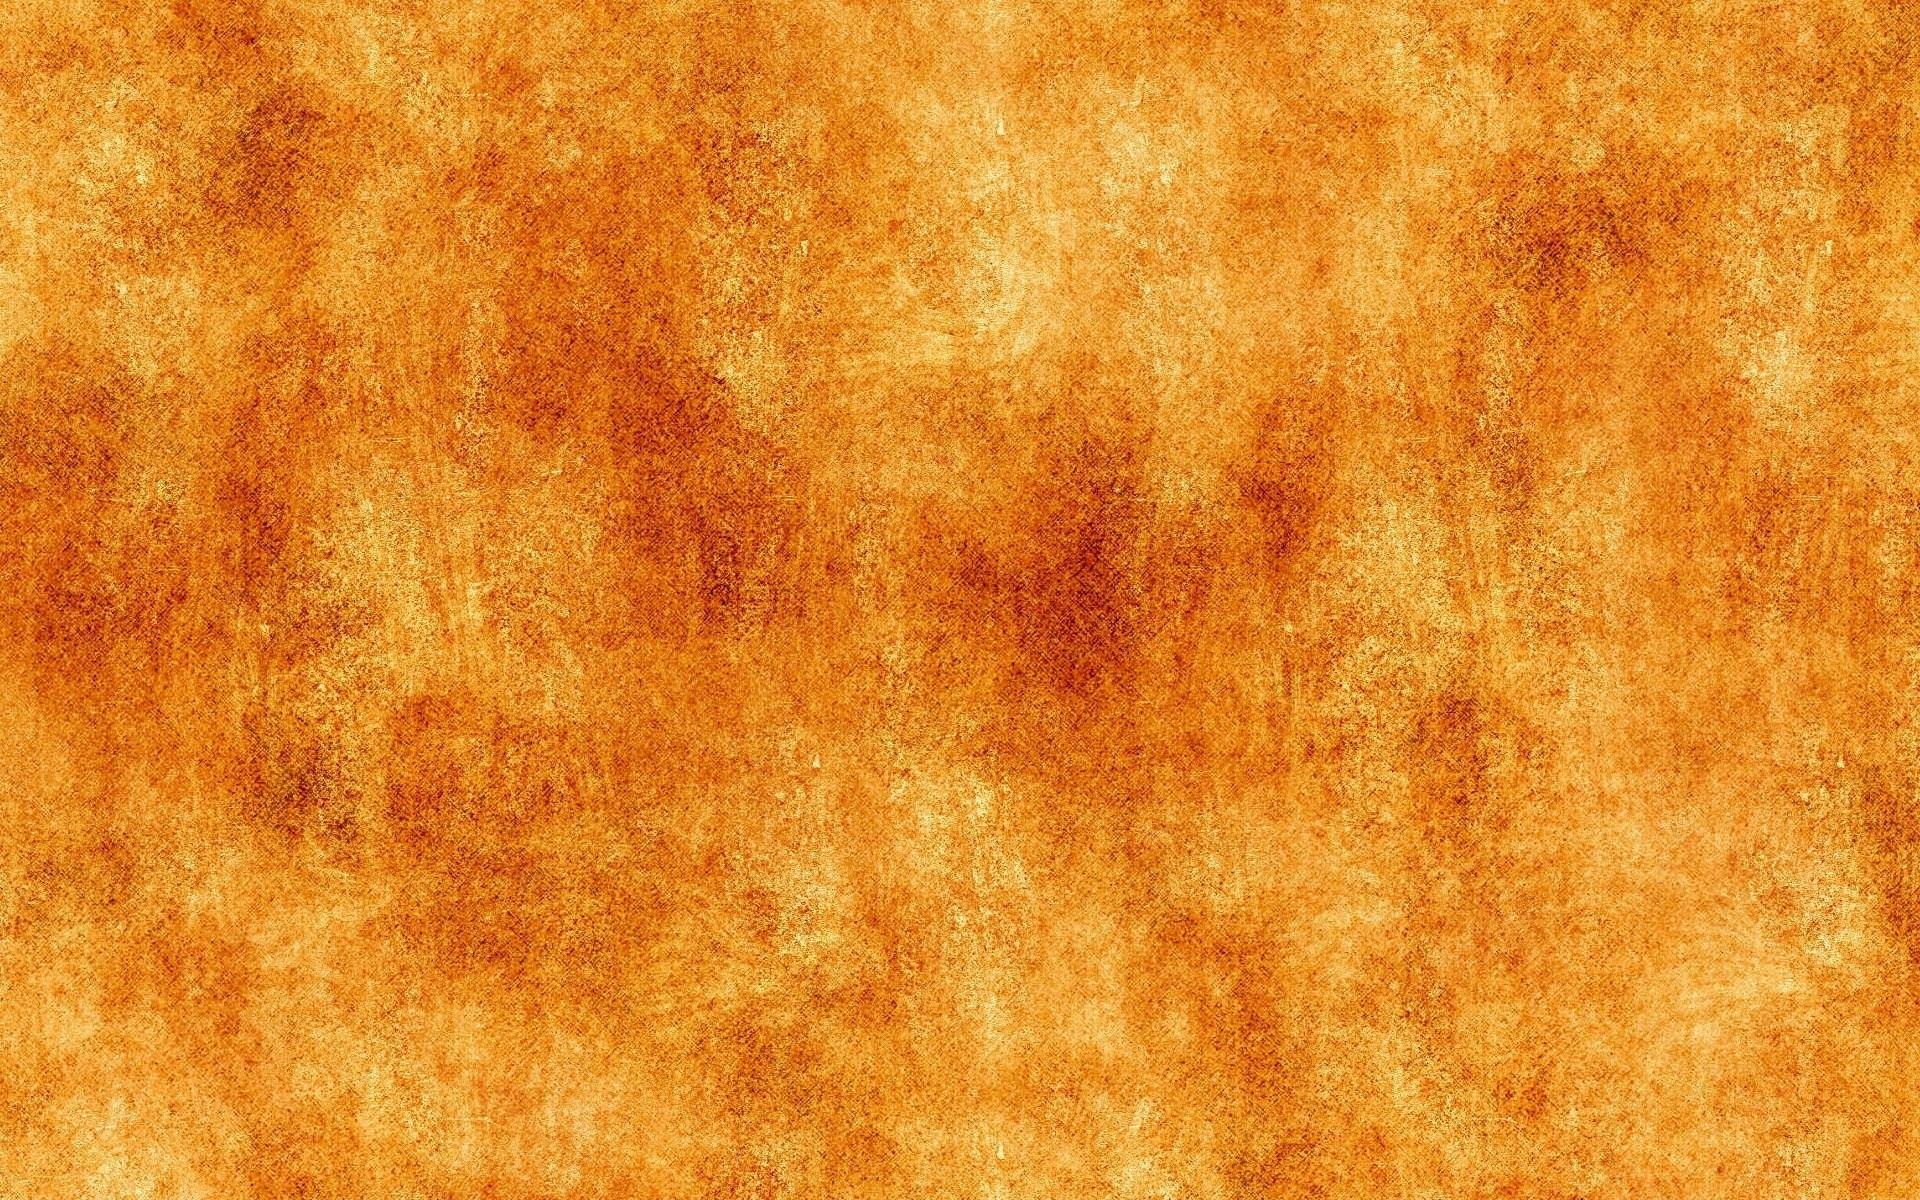 Brown Grunge HD Wallpaper